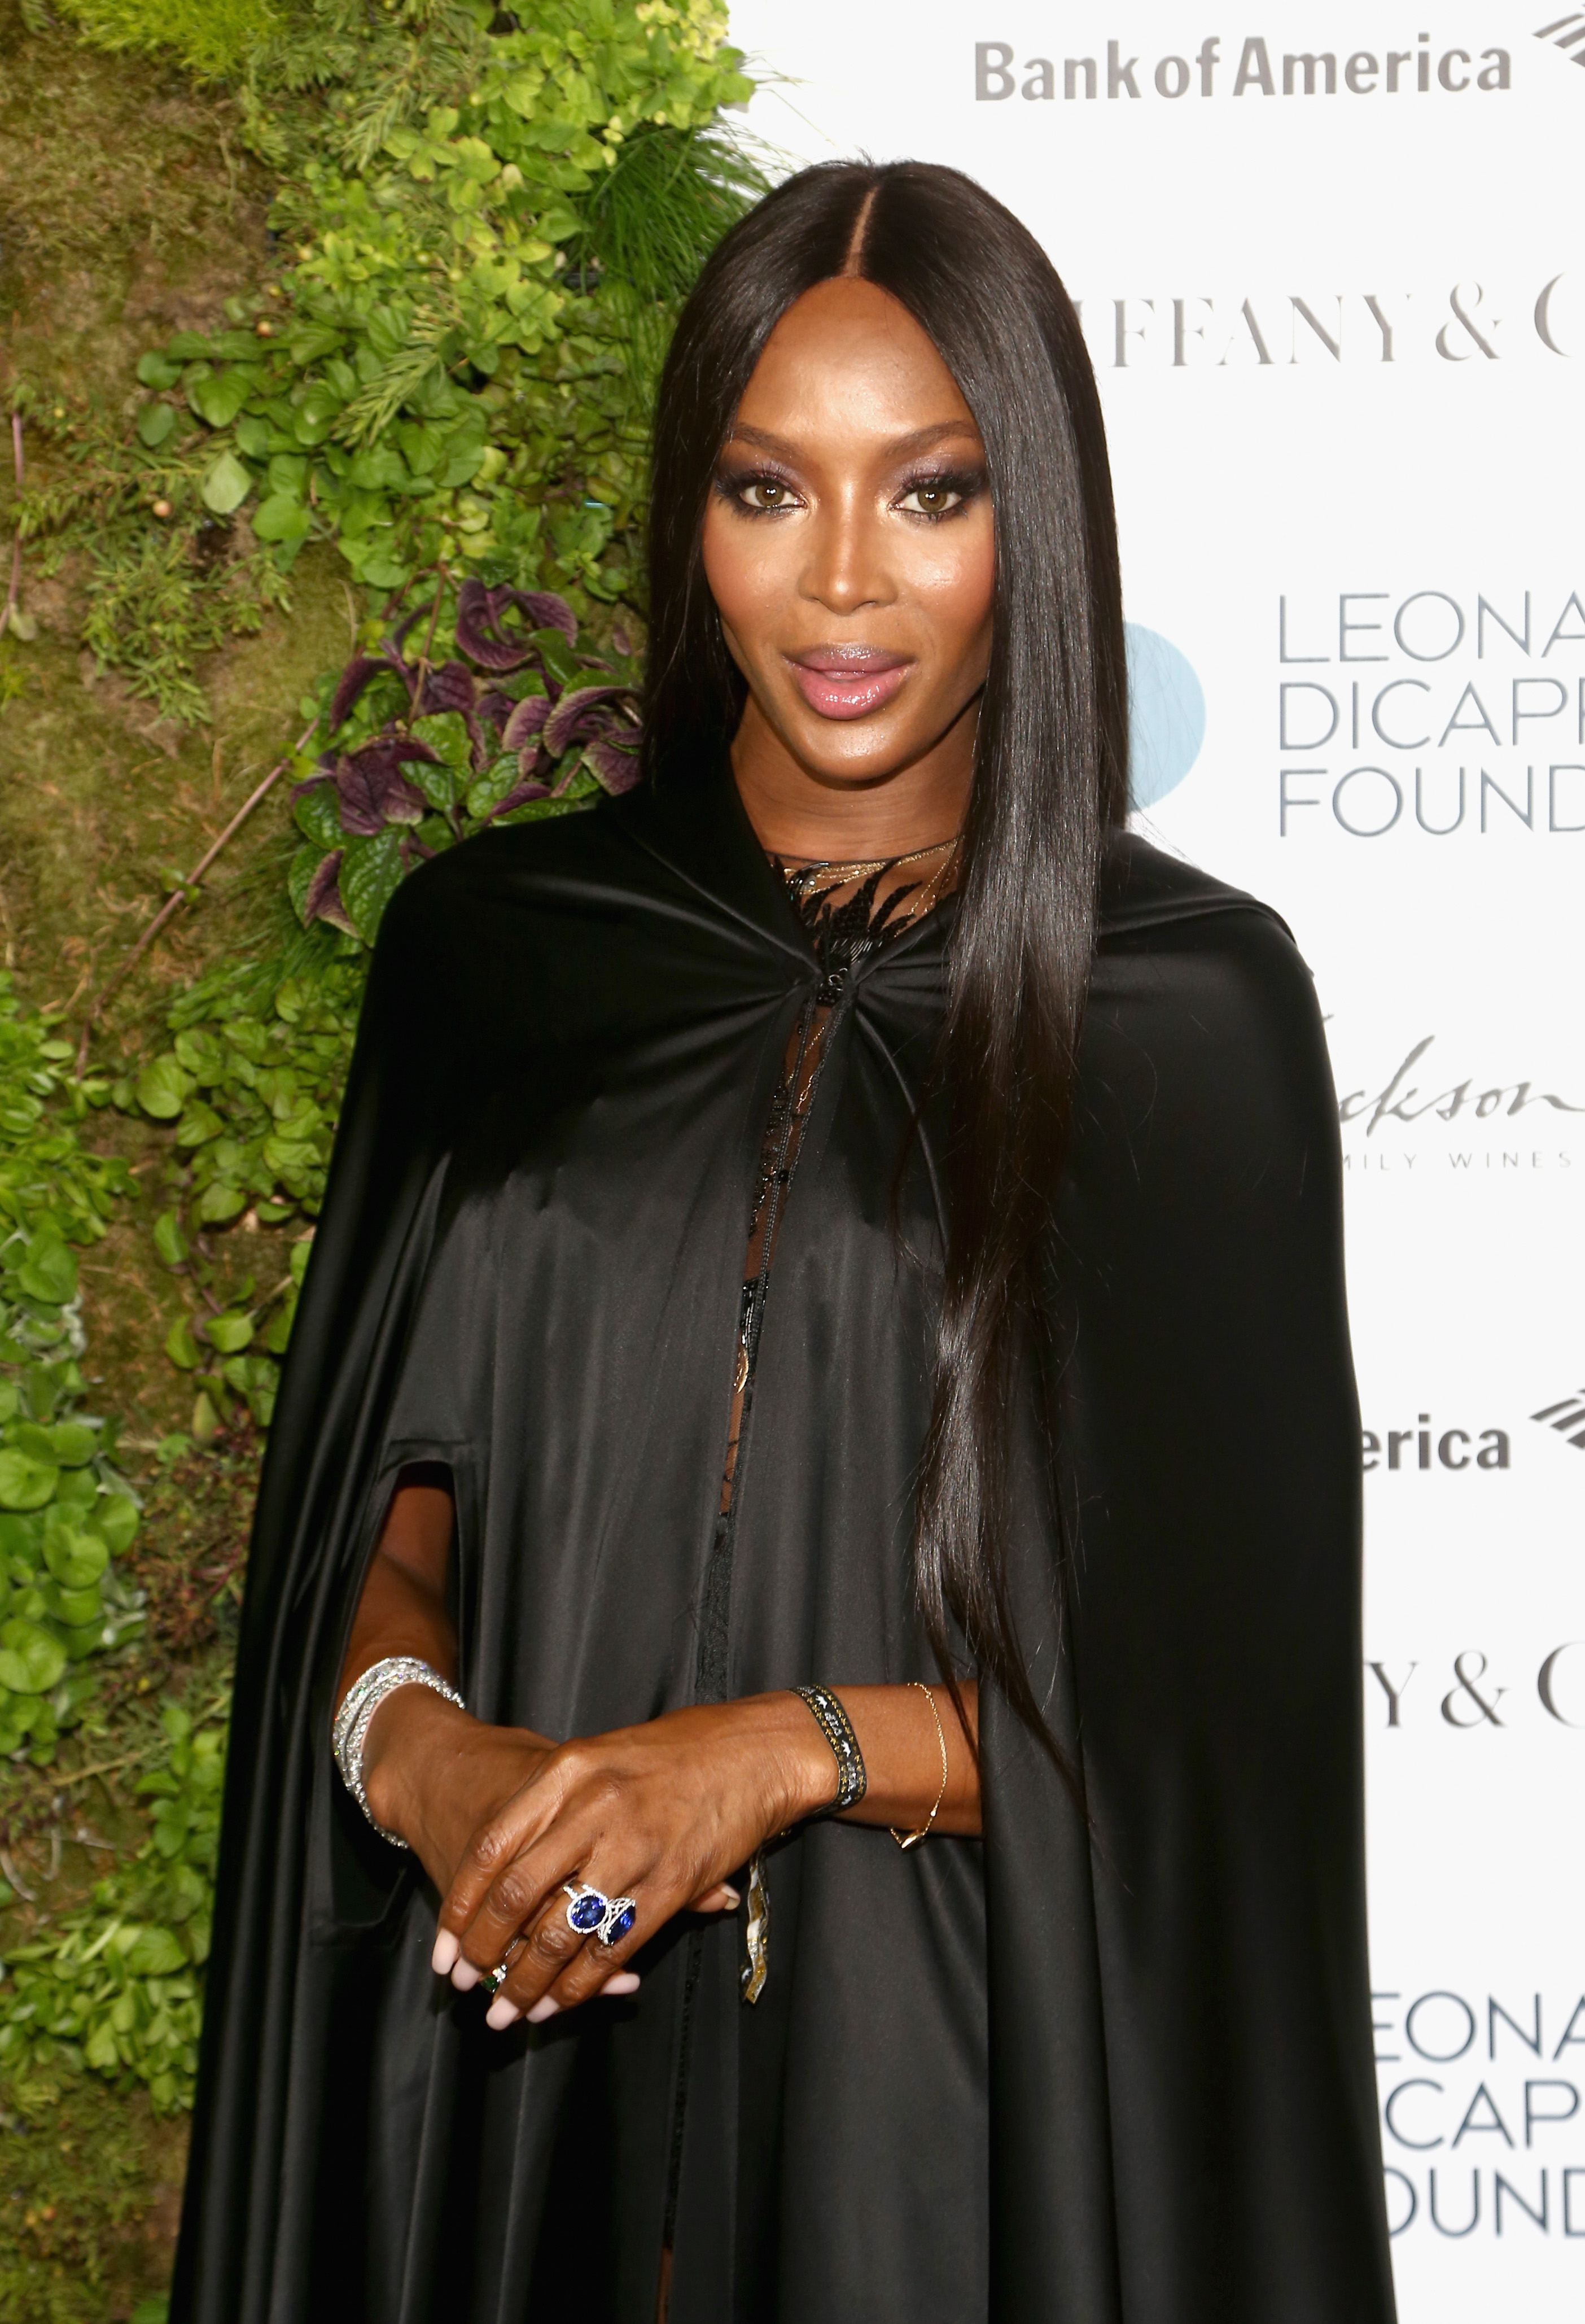 Naomi Campbell arrives at the Leonardo DiCaprio Foundation Gala at Jackson Park Ranch on September 15, 2018 in Santa Rosa, California. (Getty)